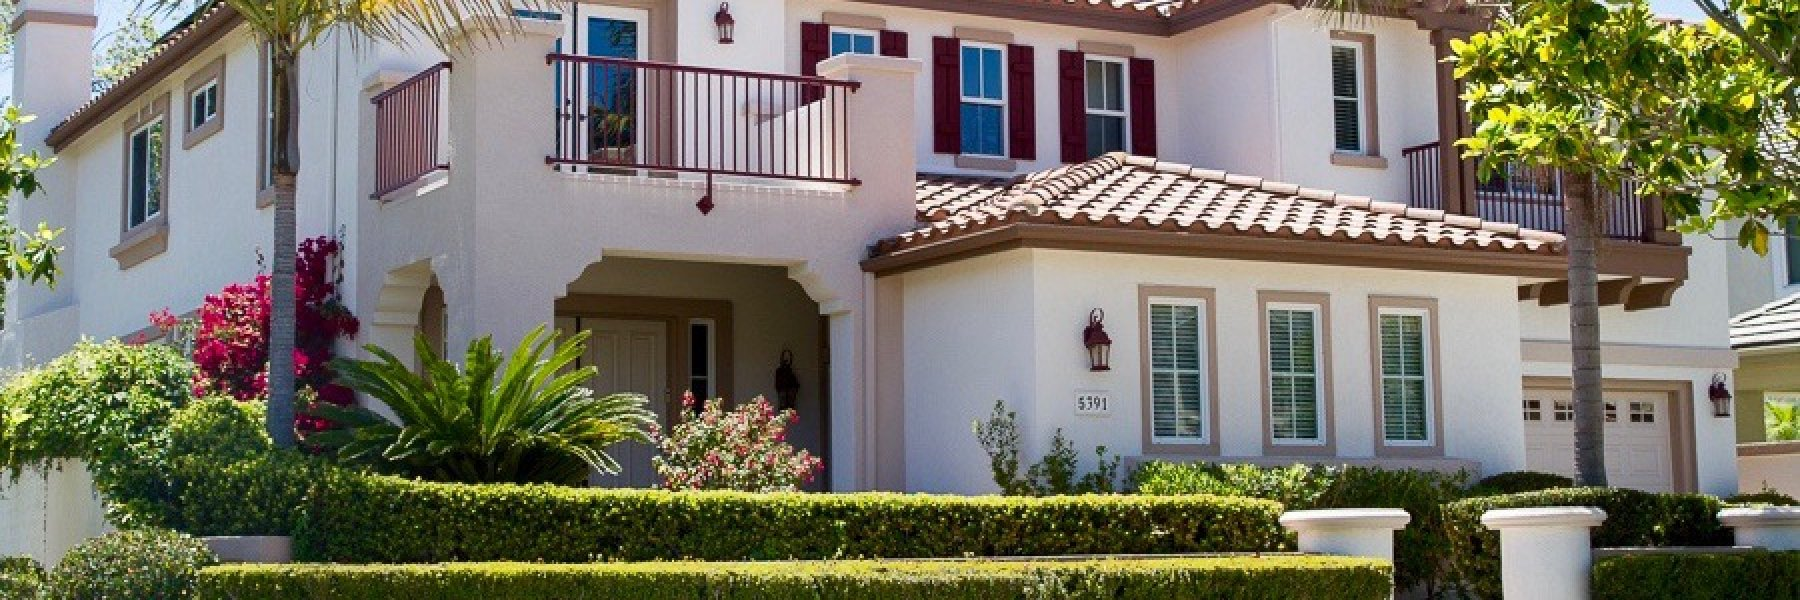 Steeplechase is a community of homes in San Diego California